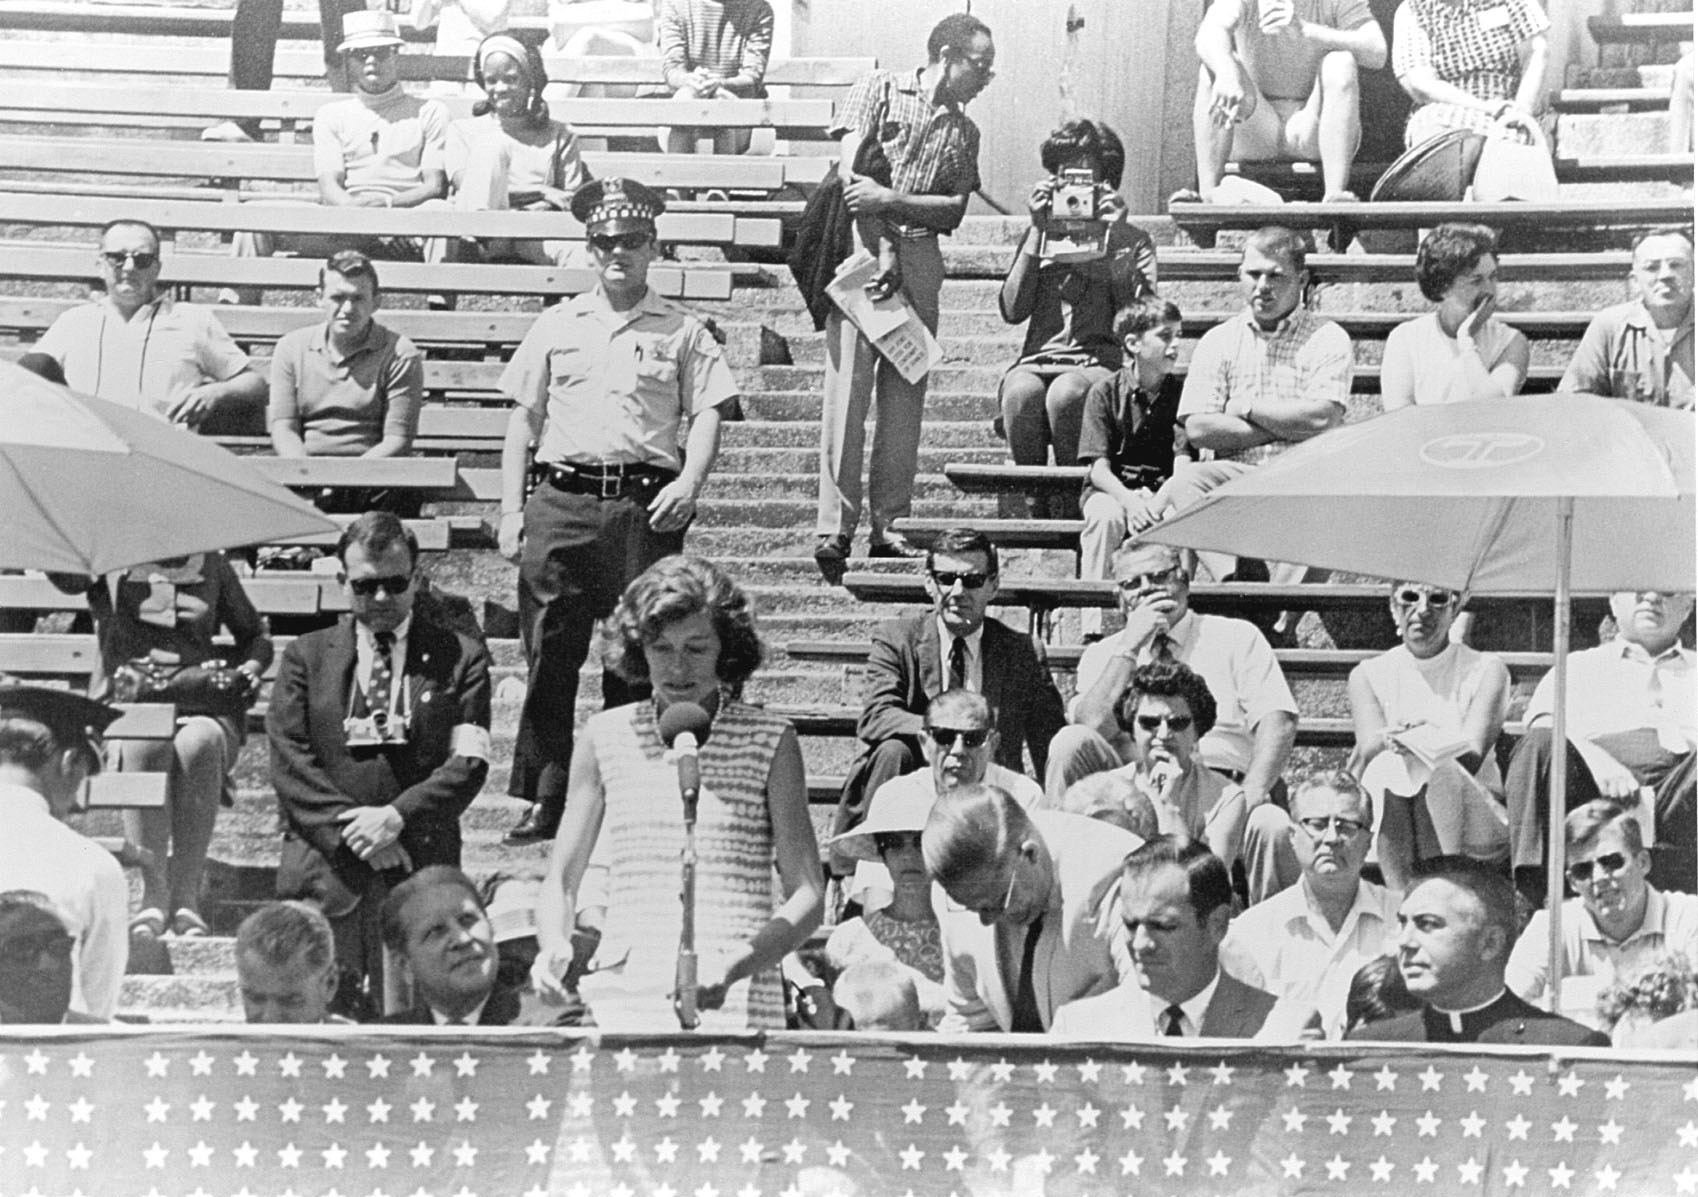 Flanked by political and community leaders of Chicago including Mayor Richard Daley, Eunice Kennedy Shriver declares the first Special Olympics Games open.